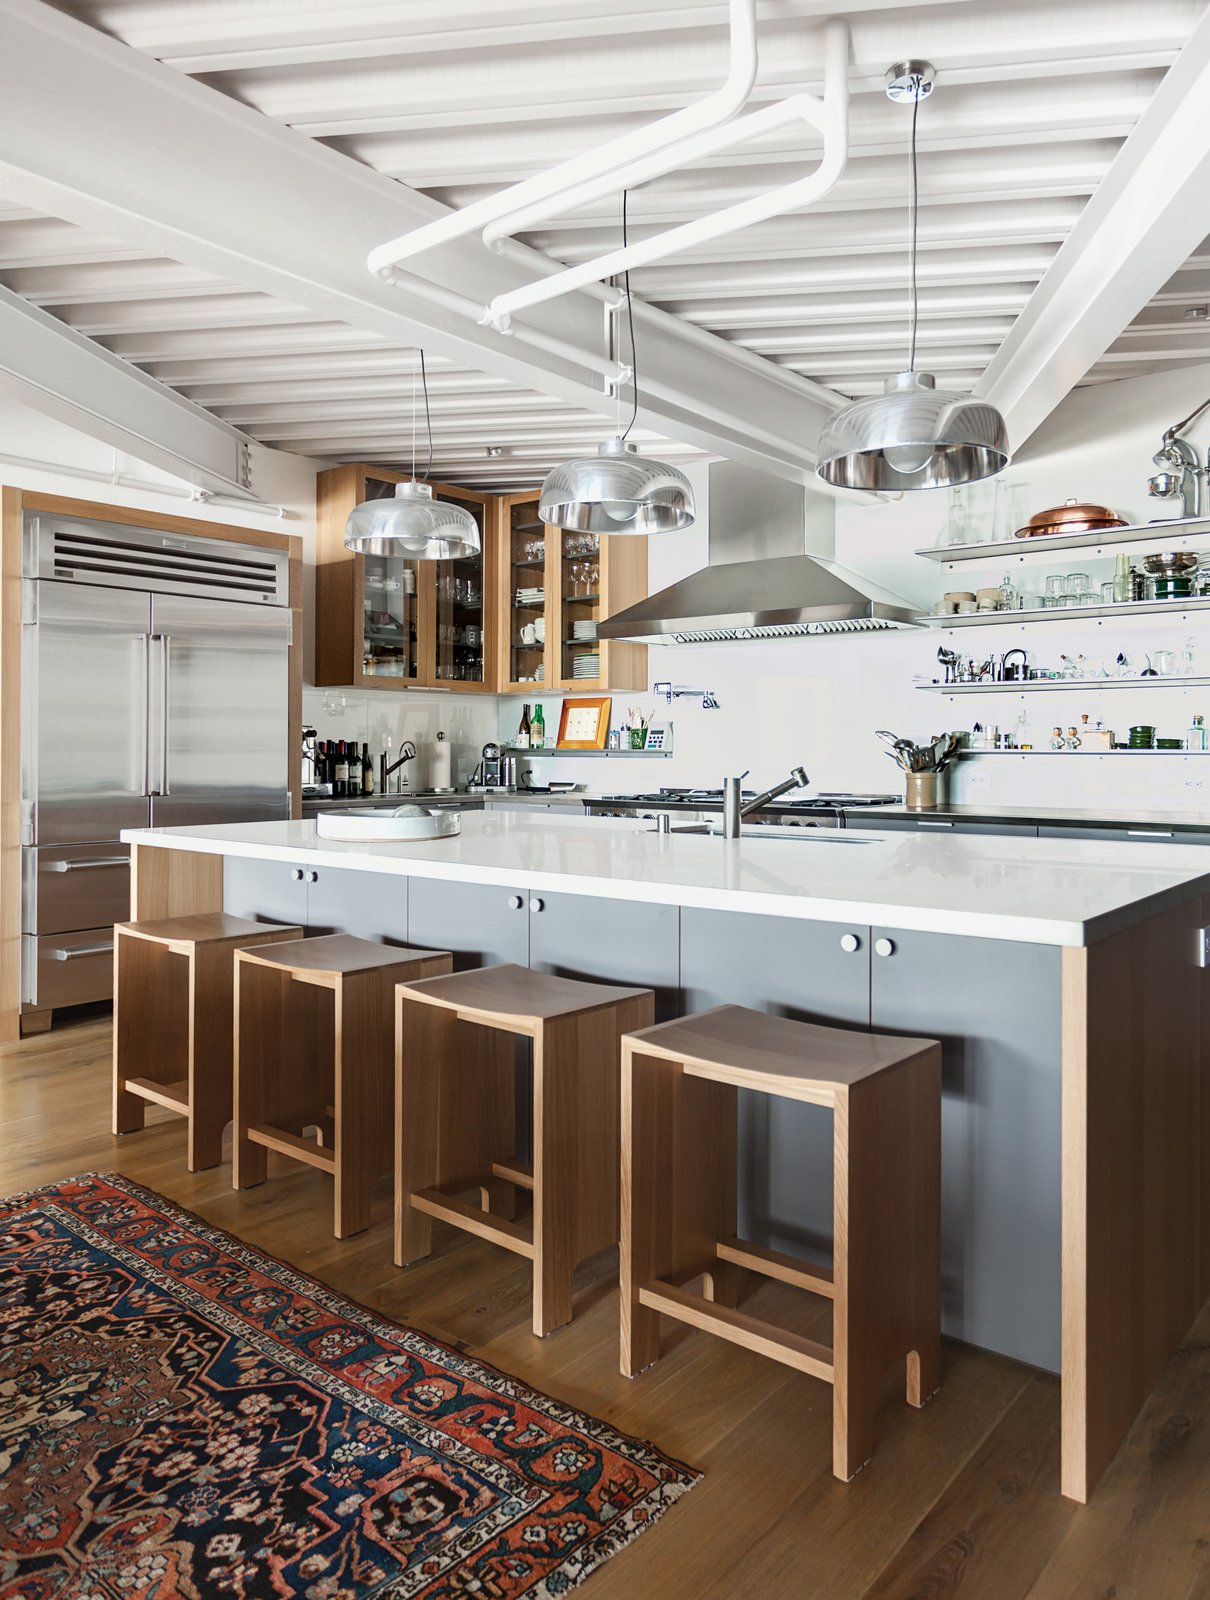 #kitchen #bar #kitchenisland #lighting #rug #renovation   60+ Modern Lighting Solutions by Dwell from Kitchen